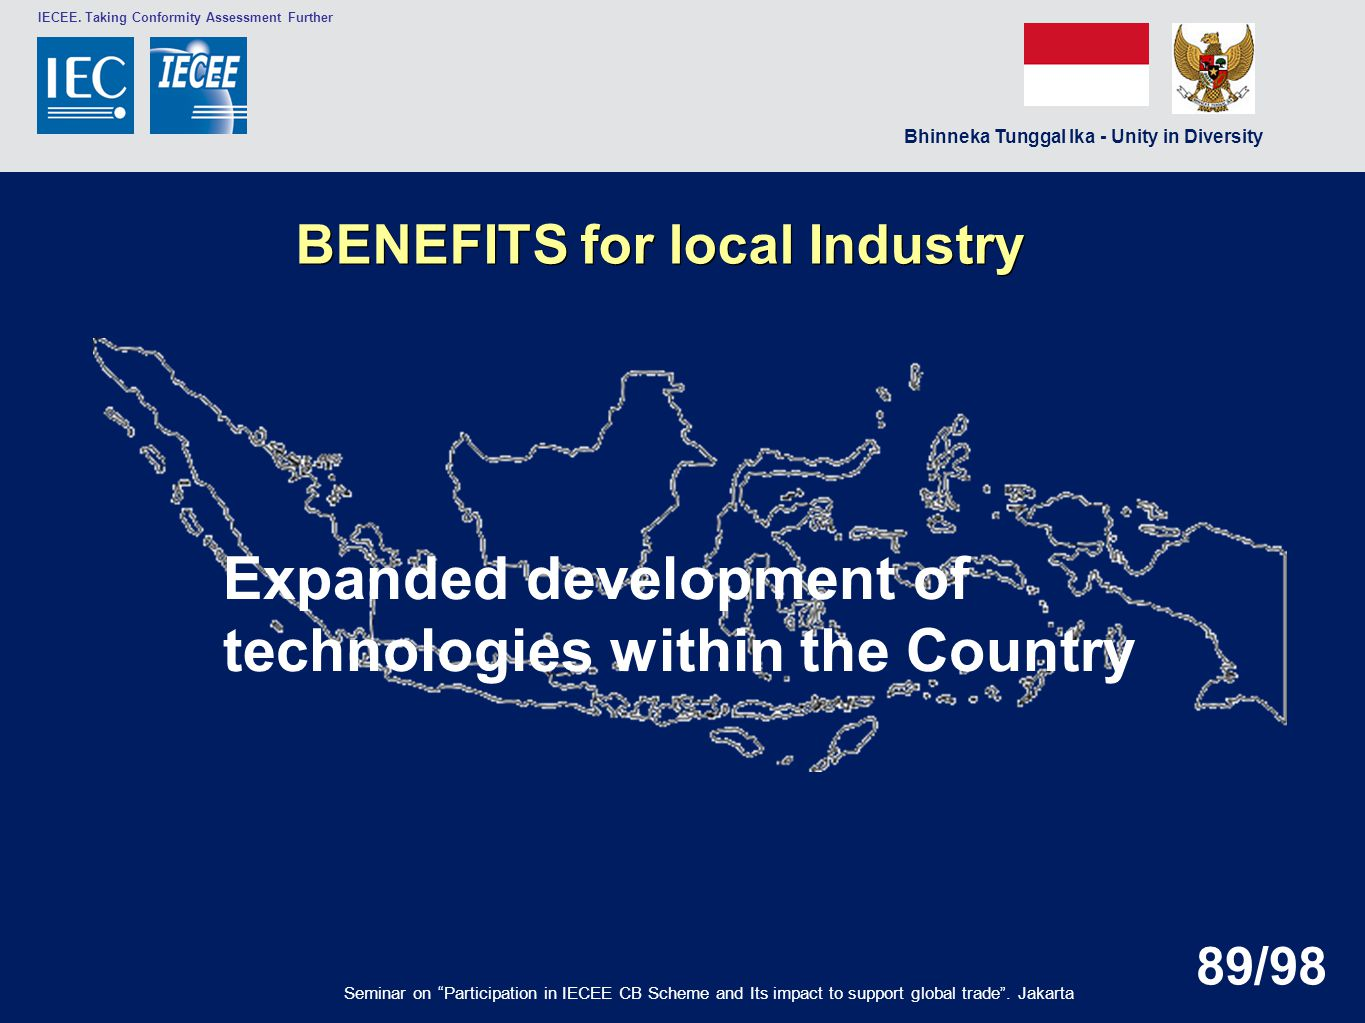 Expanded development of technologies within the Country